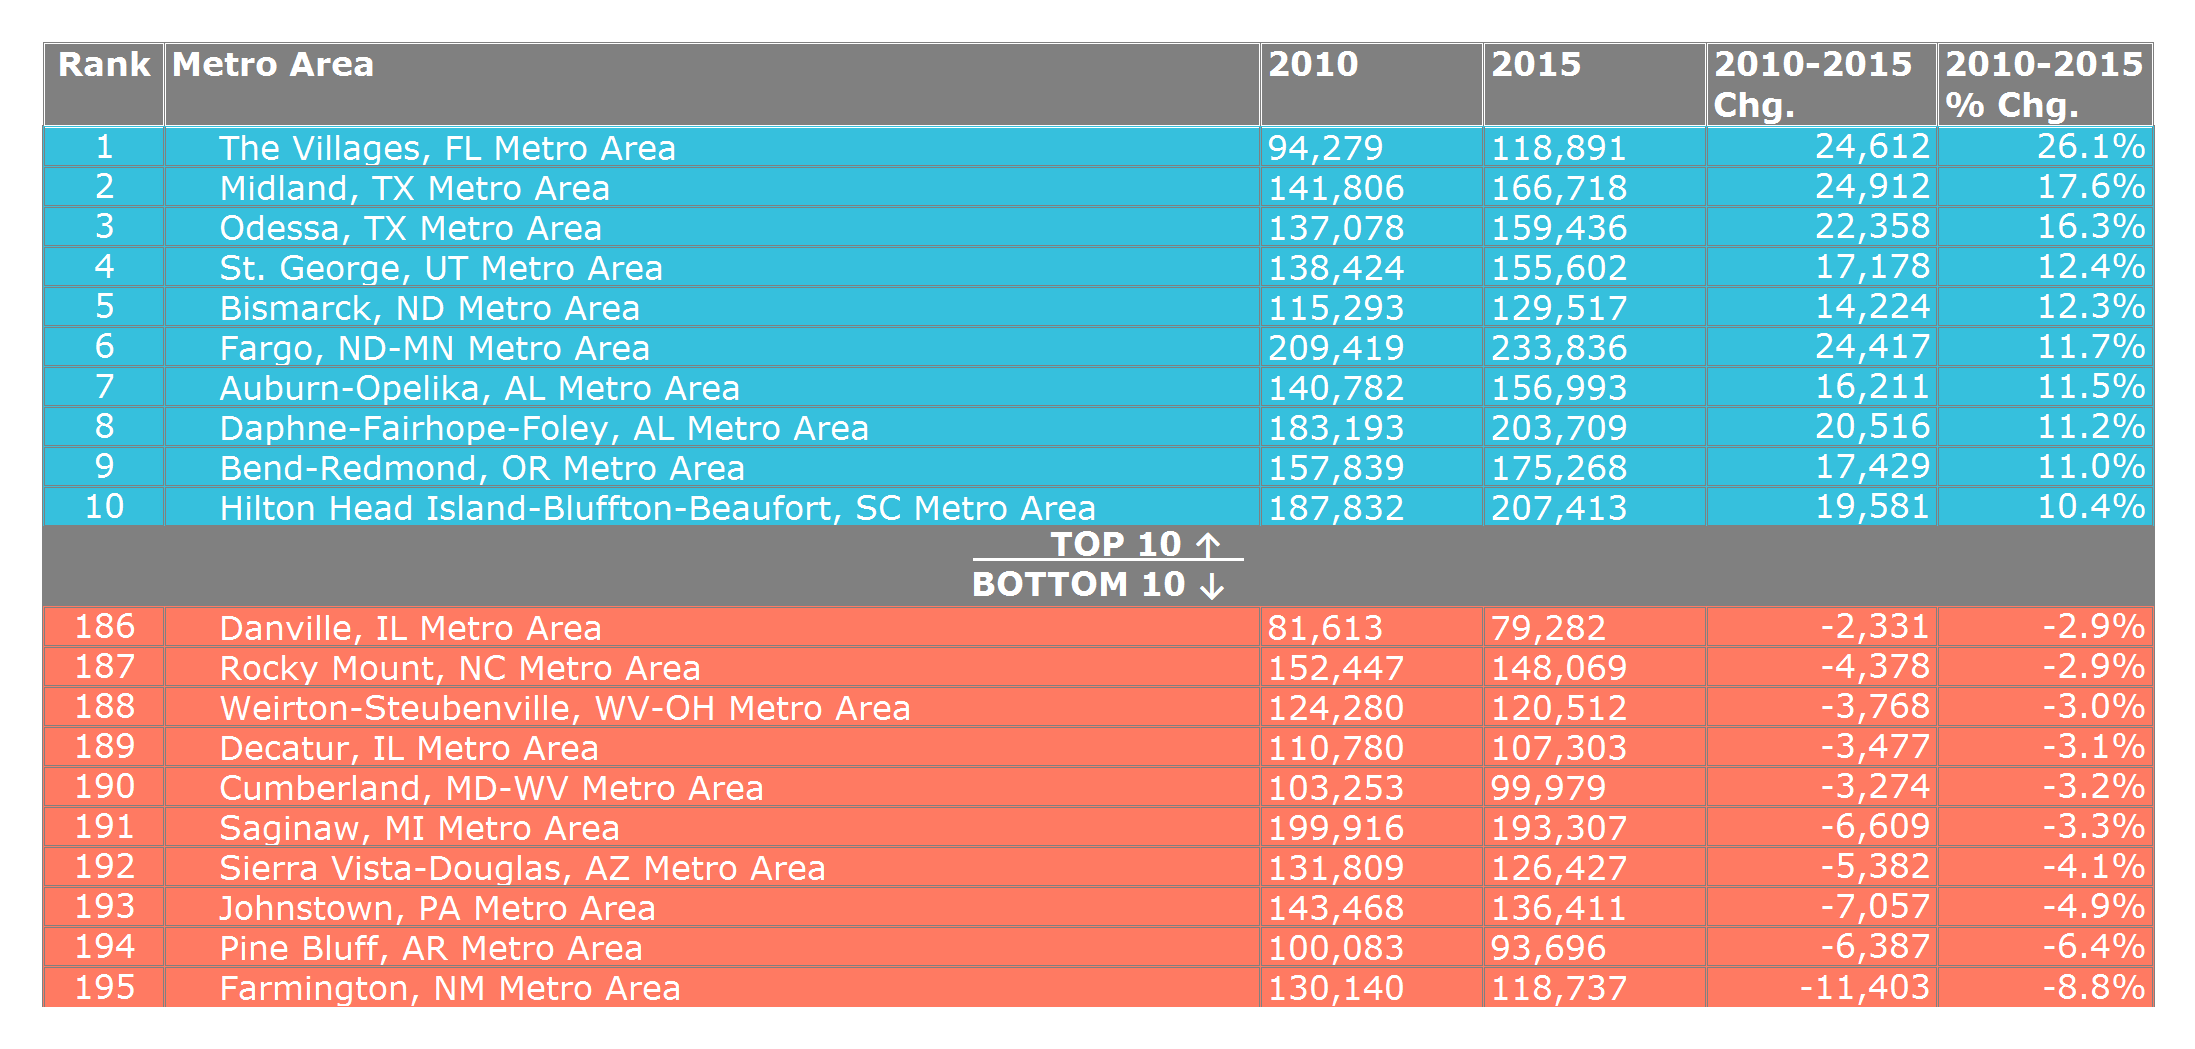 Top 10 & Bottom 10 Small Metro Areas Ranked by 2010-2015 Population Growth